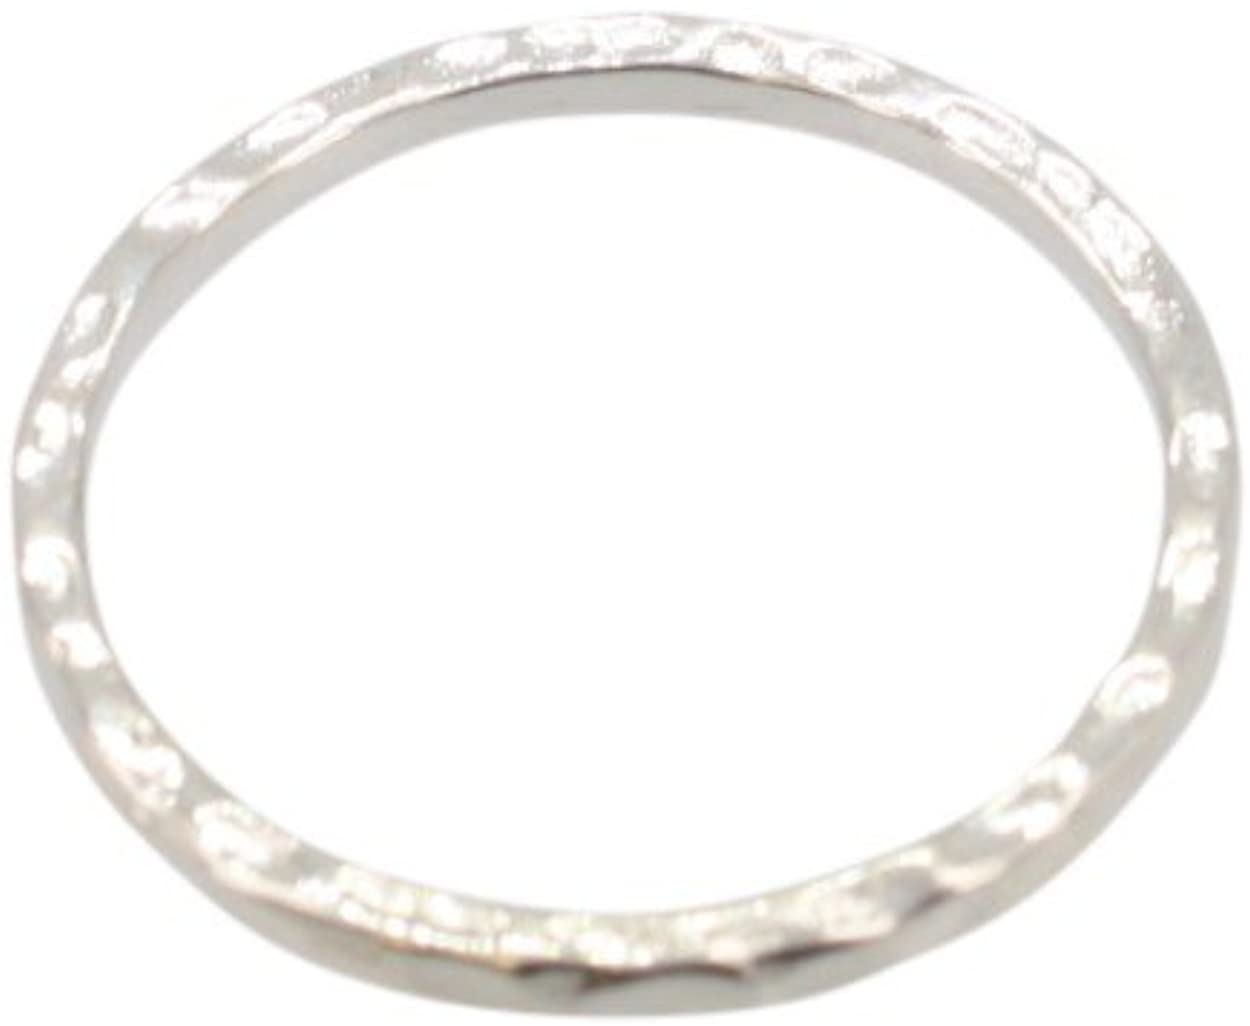 Thin Hammered Stack Ring in Sterling Silver, #6369